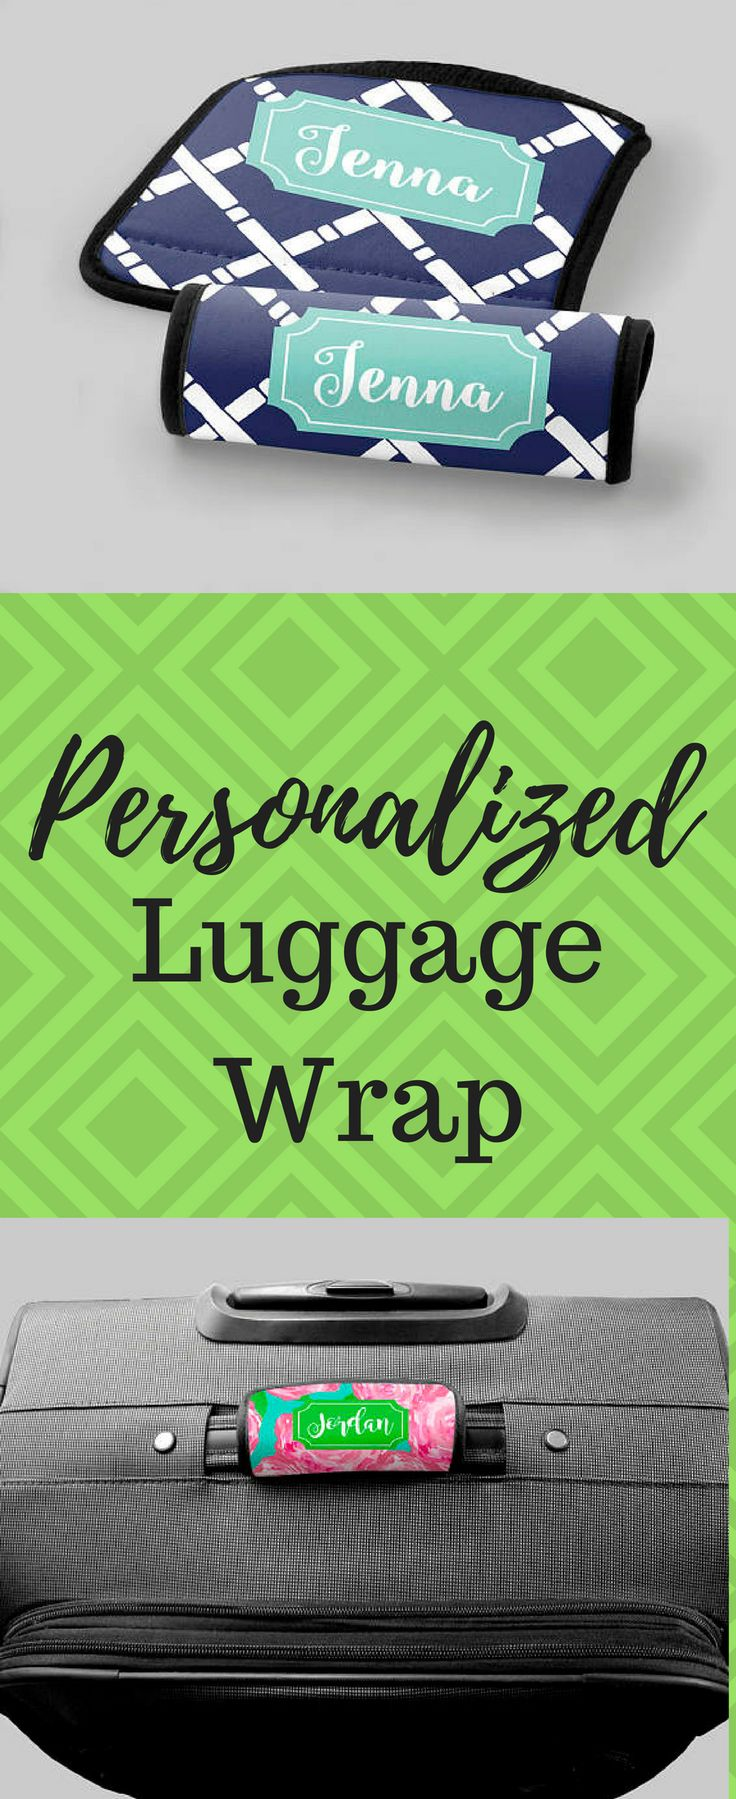 Personalized Luggage Wrap - Navy Bamboo Cross - Luggage Accessories Travel Accessories Gifts for Her Monogrammed Gifts Personalized Gifts #afflink